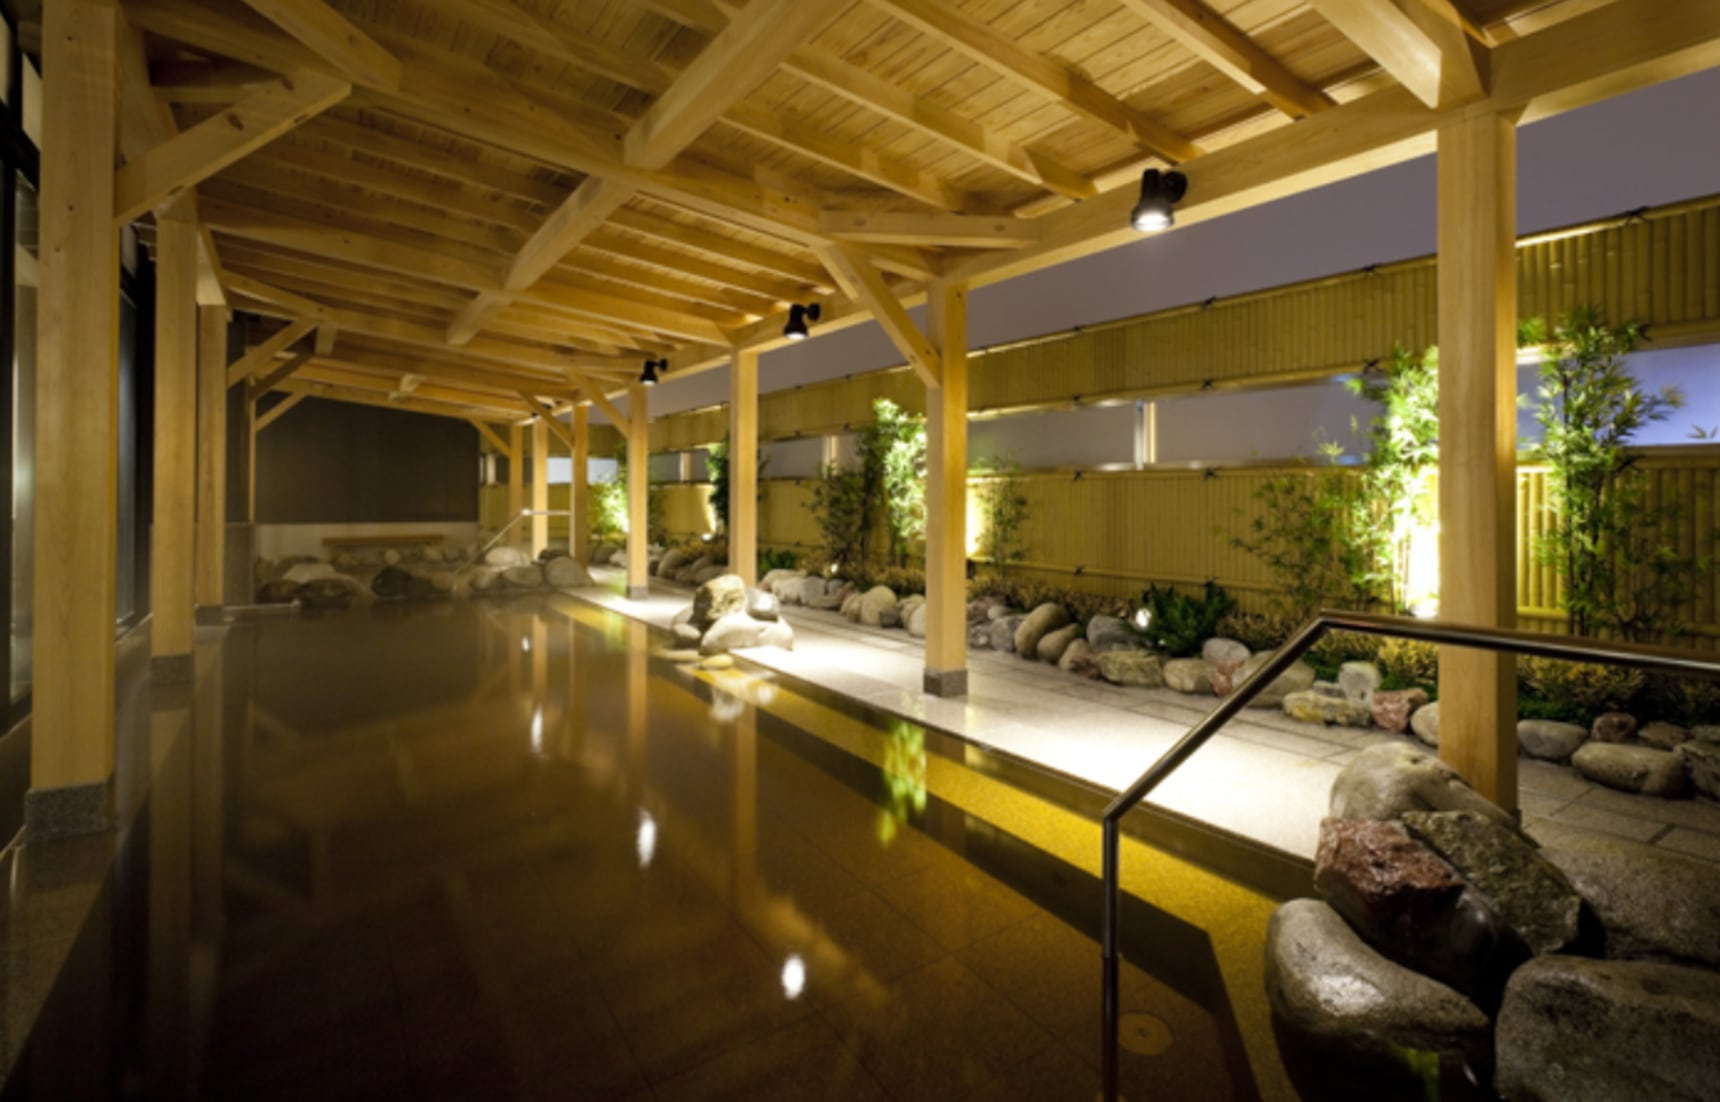 Bathe in an Onsen Before Your Next Flight